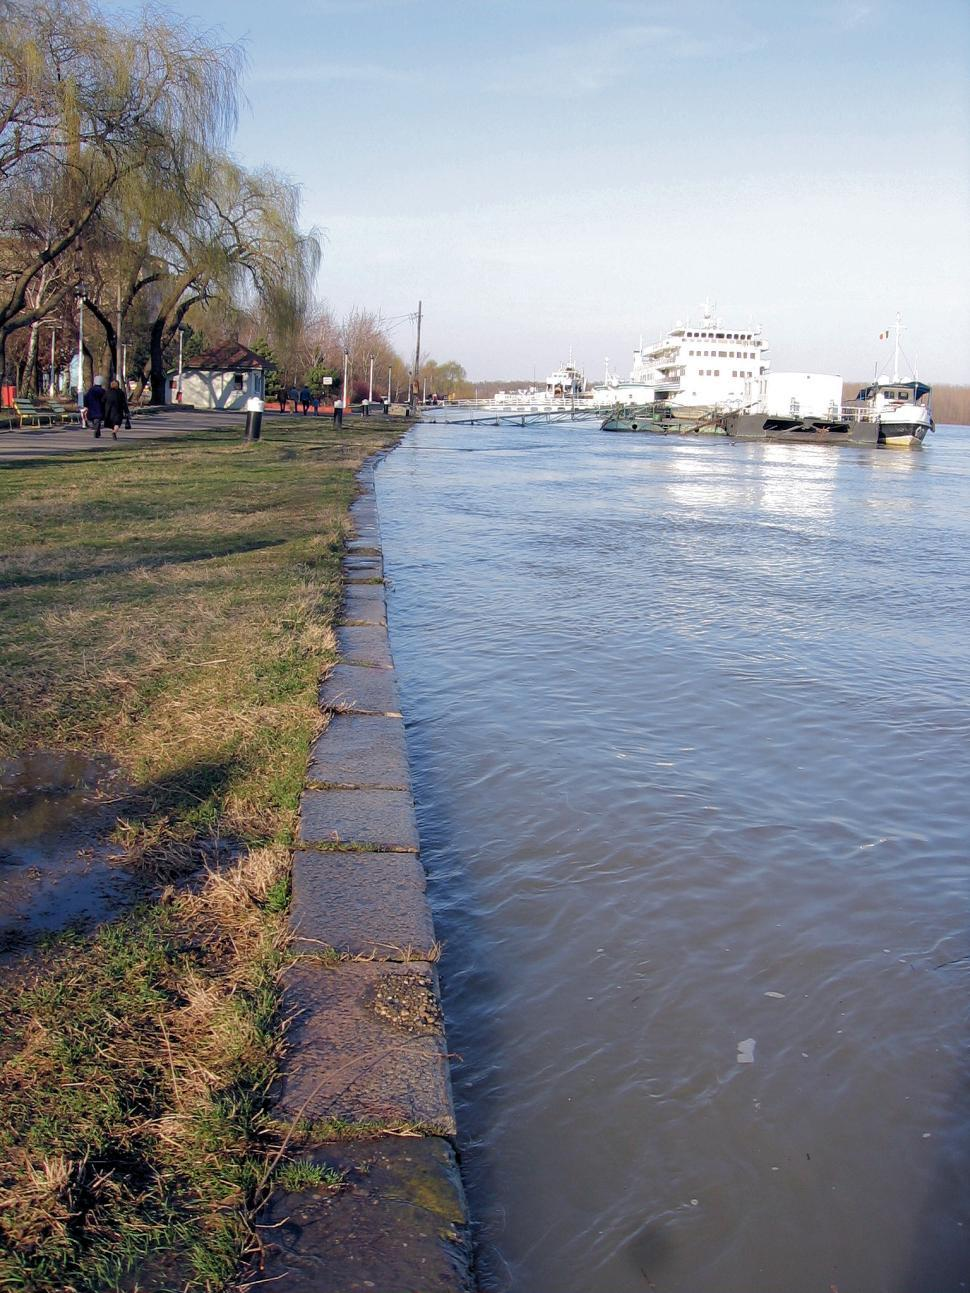 Download Free Stock HD Photo of flood water on local park walkway after heavy rain fall Online